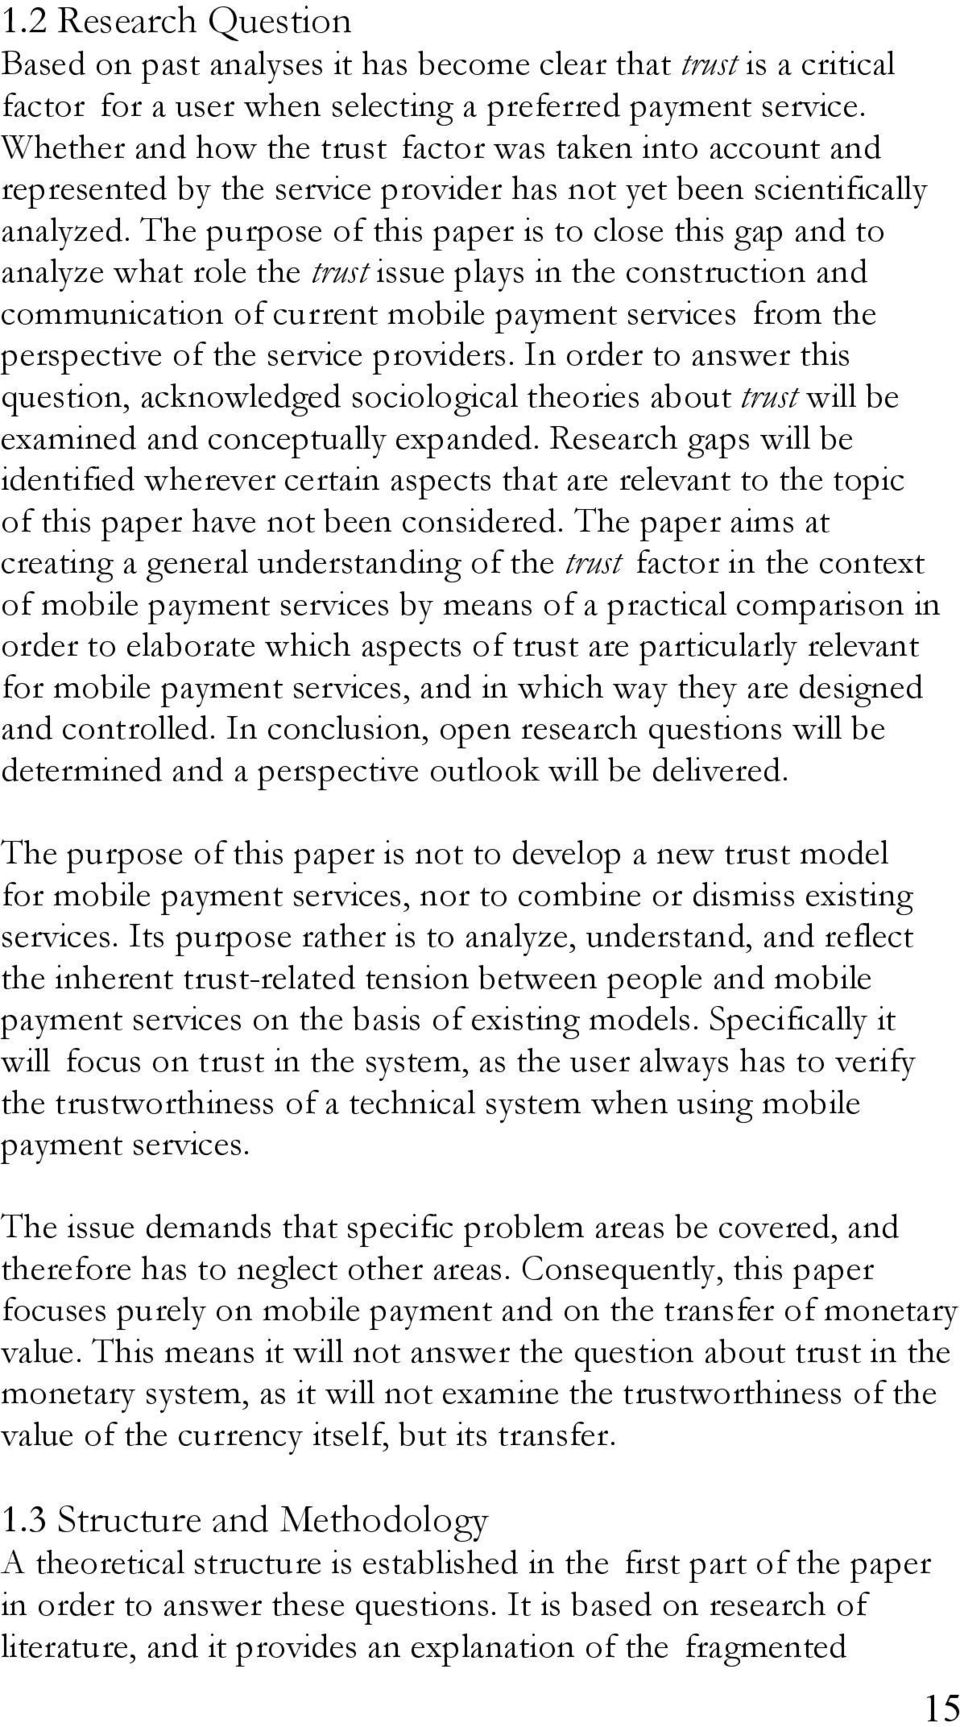 The purpose of this paper is to close this gap and to analyze what role the trust issue plays in the construction and communication of current mobile payment services from the perspective of the